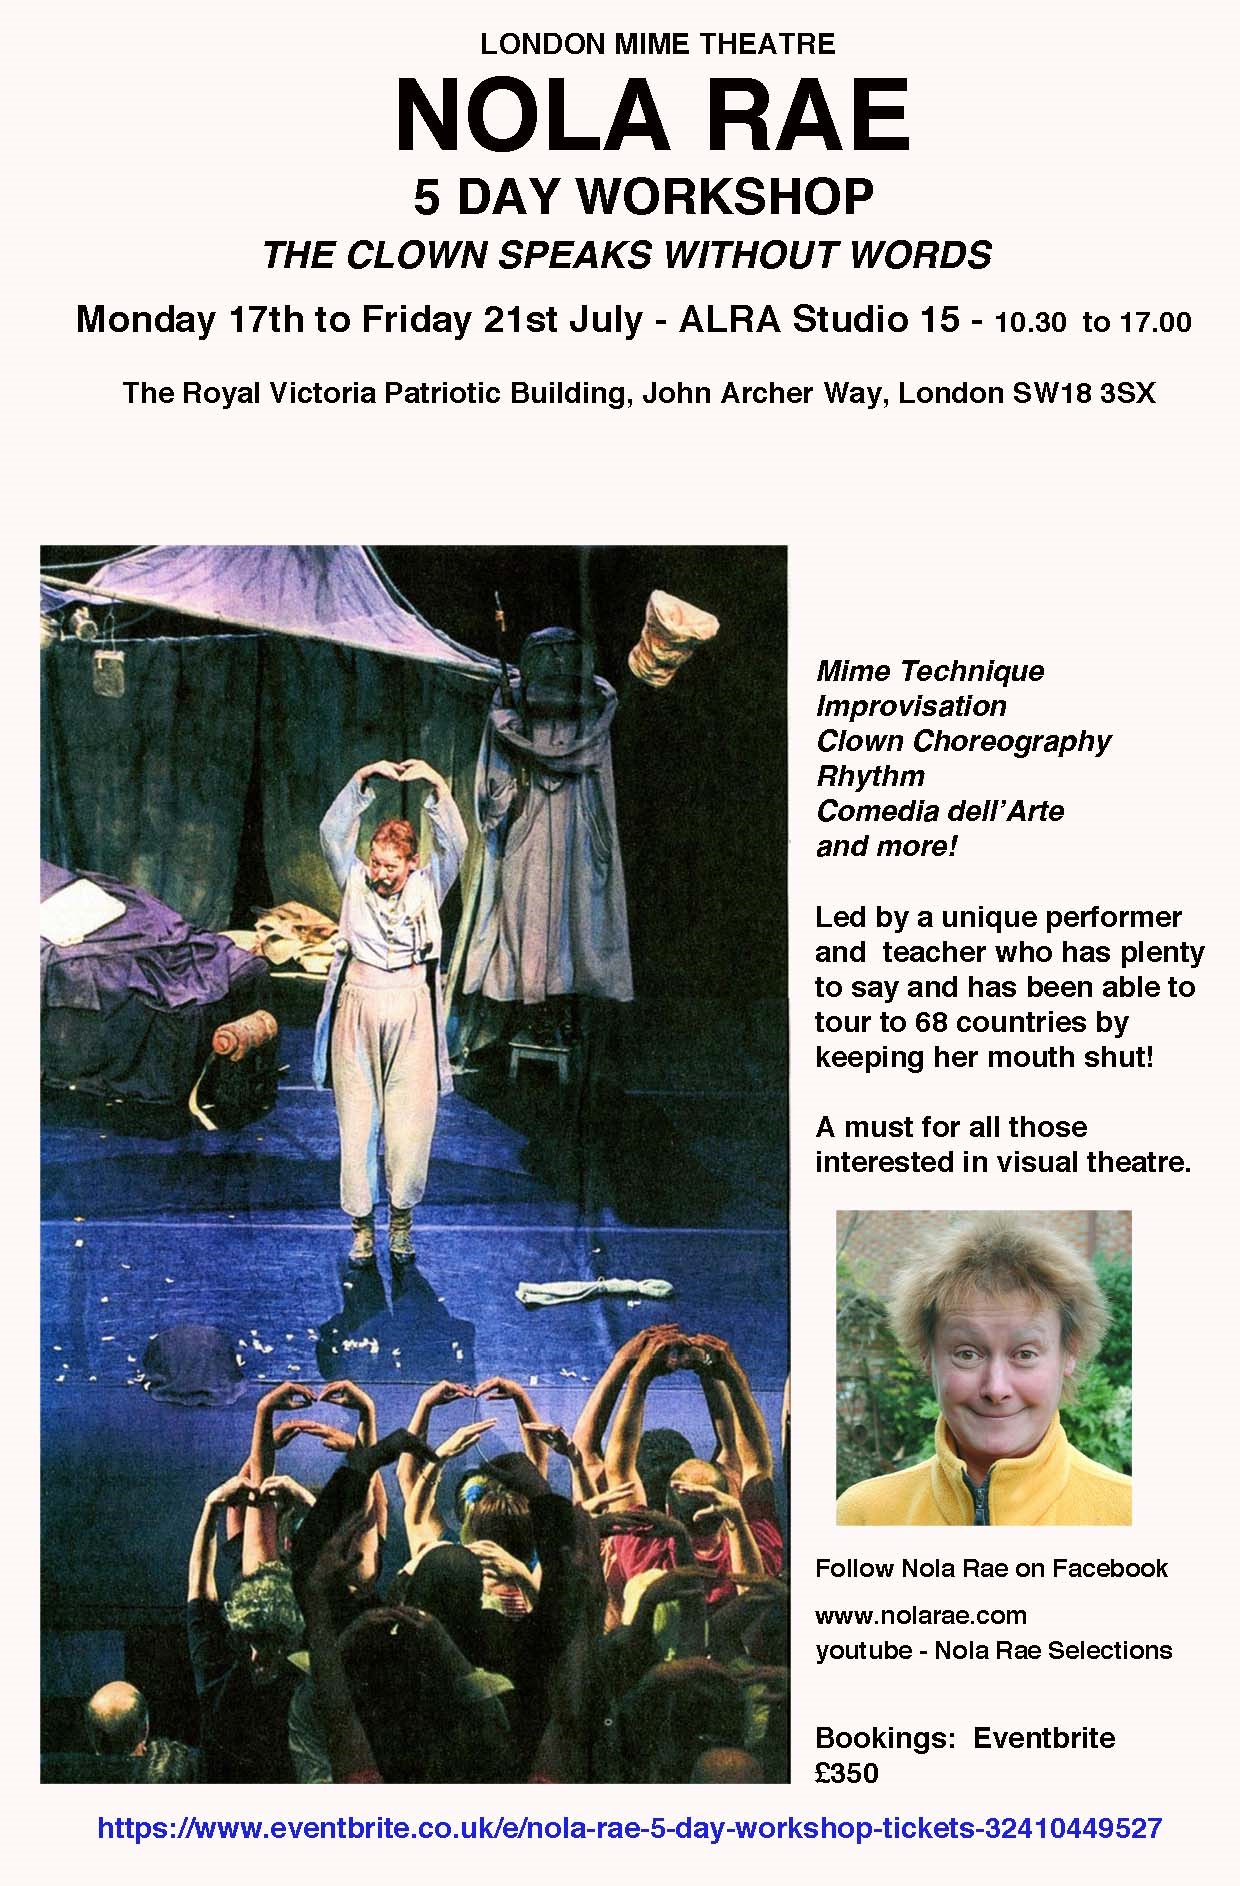 The Clown Speaks Without Words  – 5 day intensive workshop